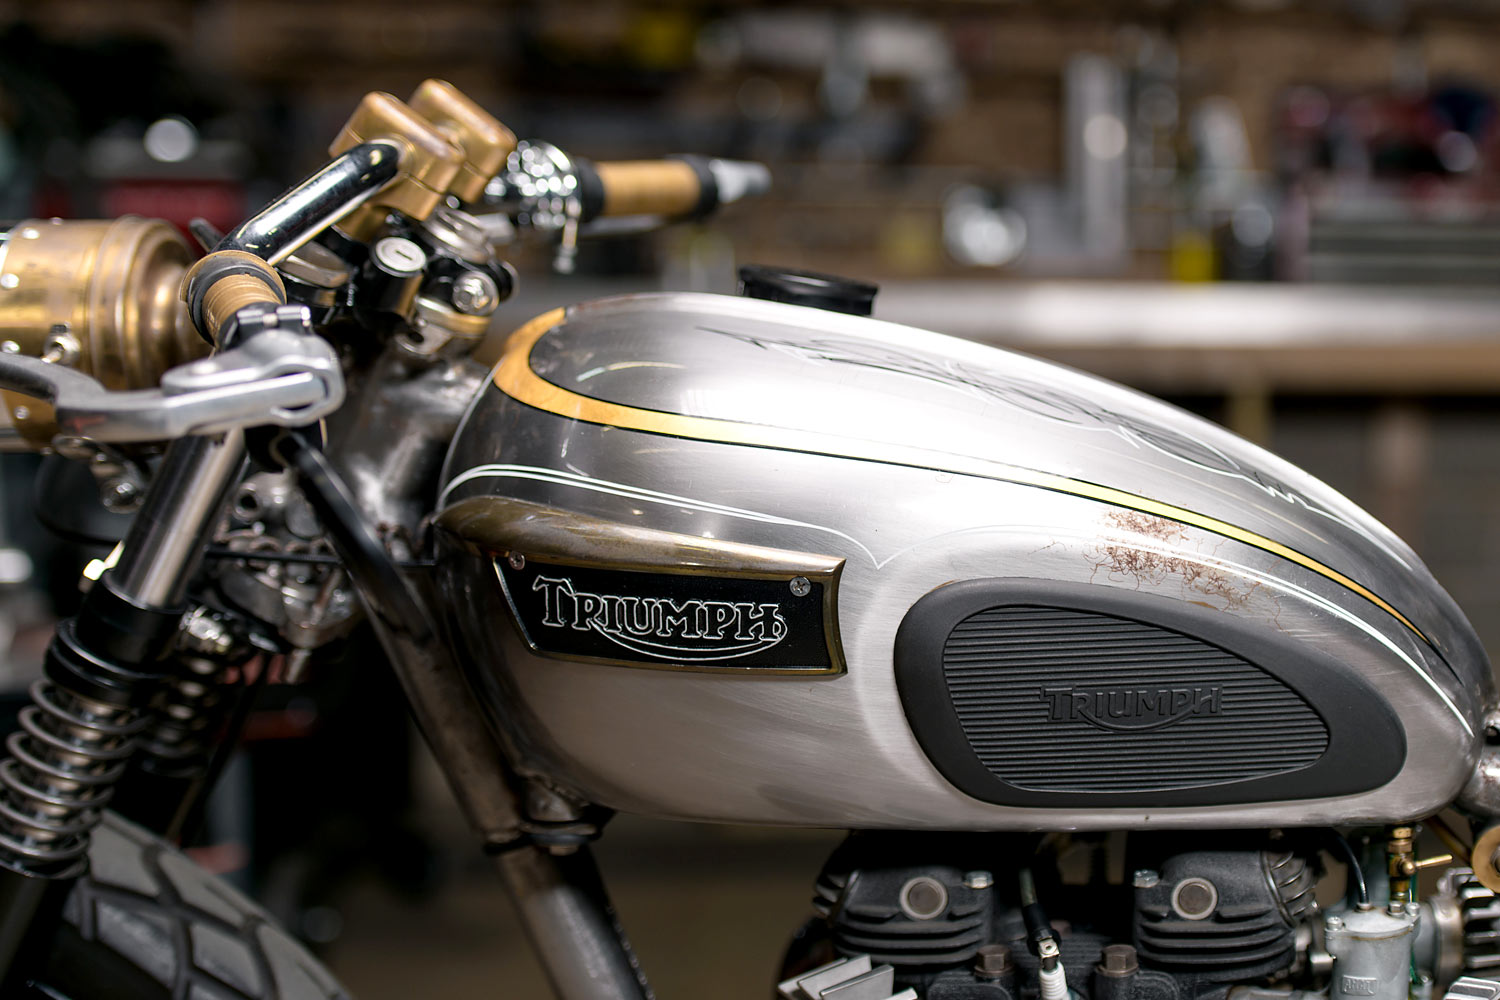 YOU ONLY LIVE TWICE  Analog Motorcycles Rebuild Their Classic '72